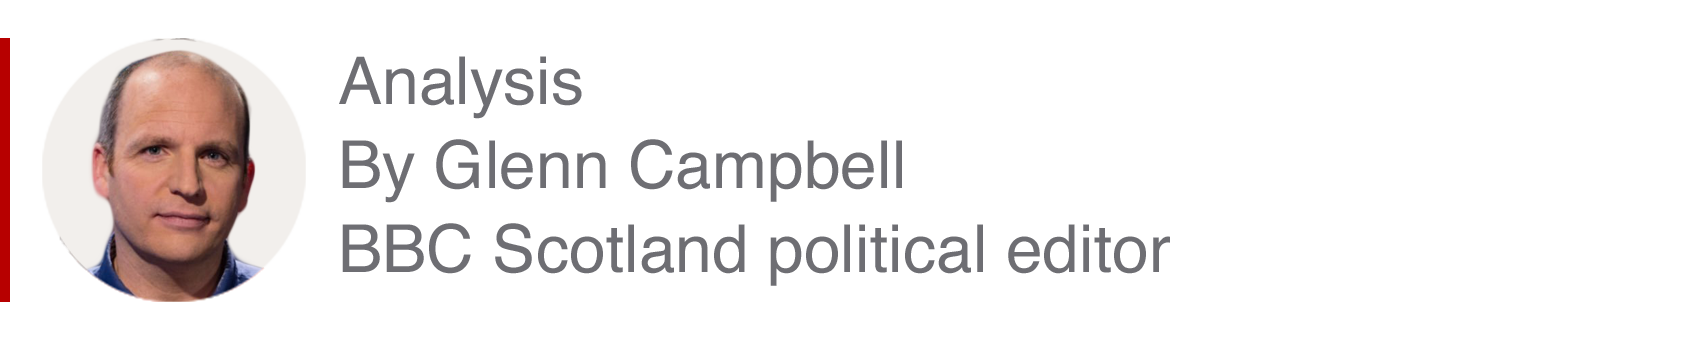 Analysis box by Glenn Campbell, BBC Scotland political editor